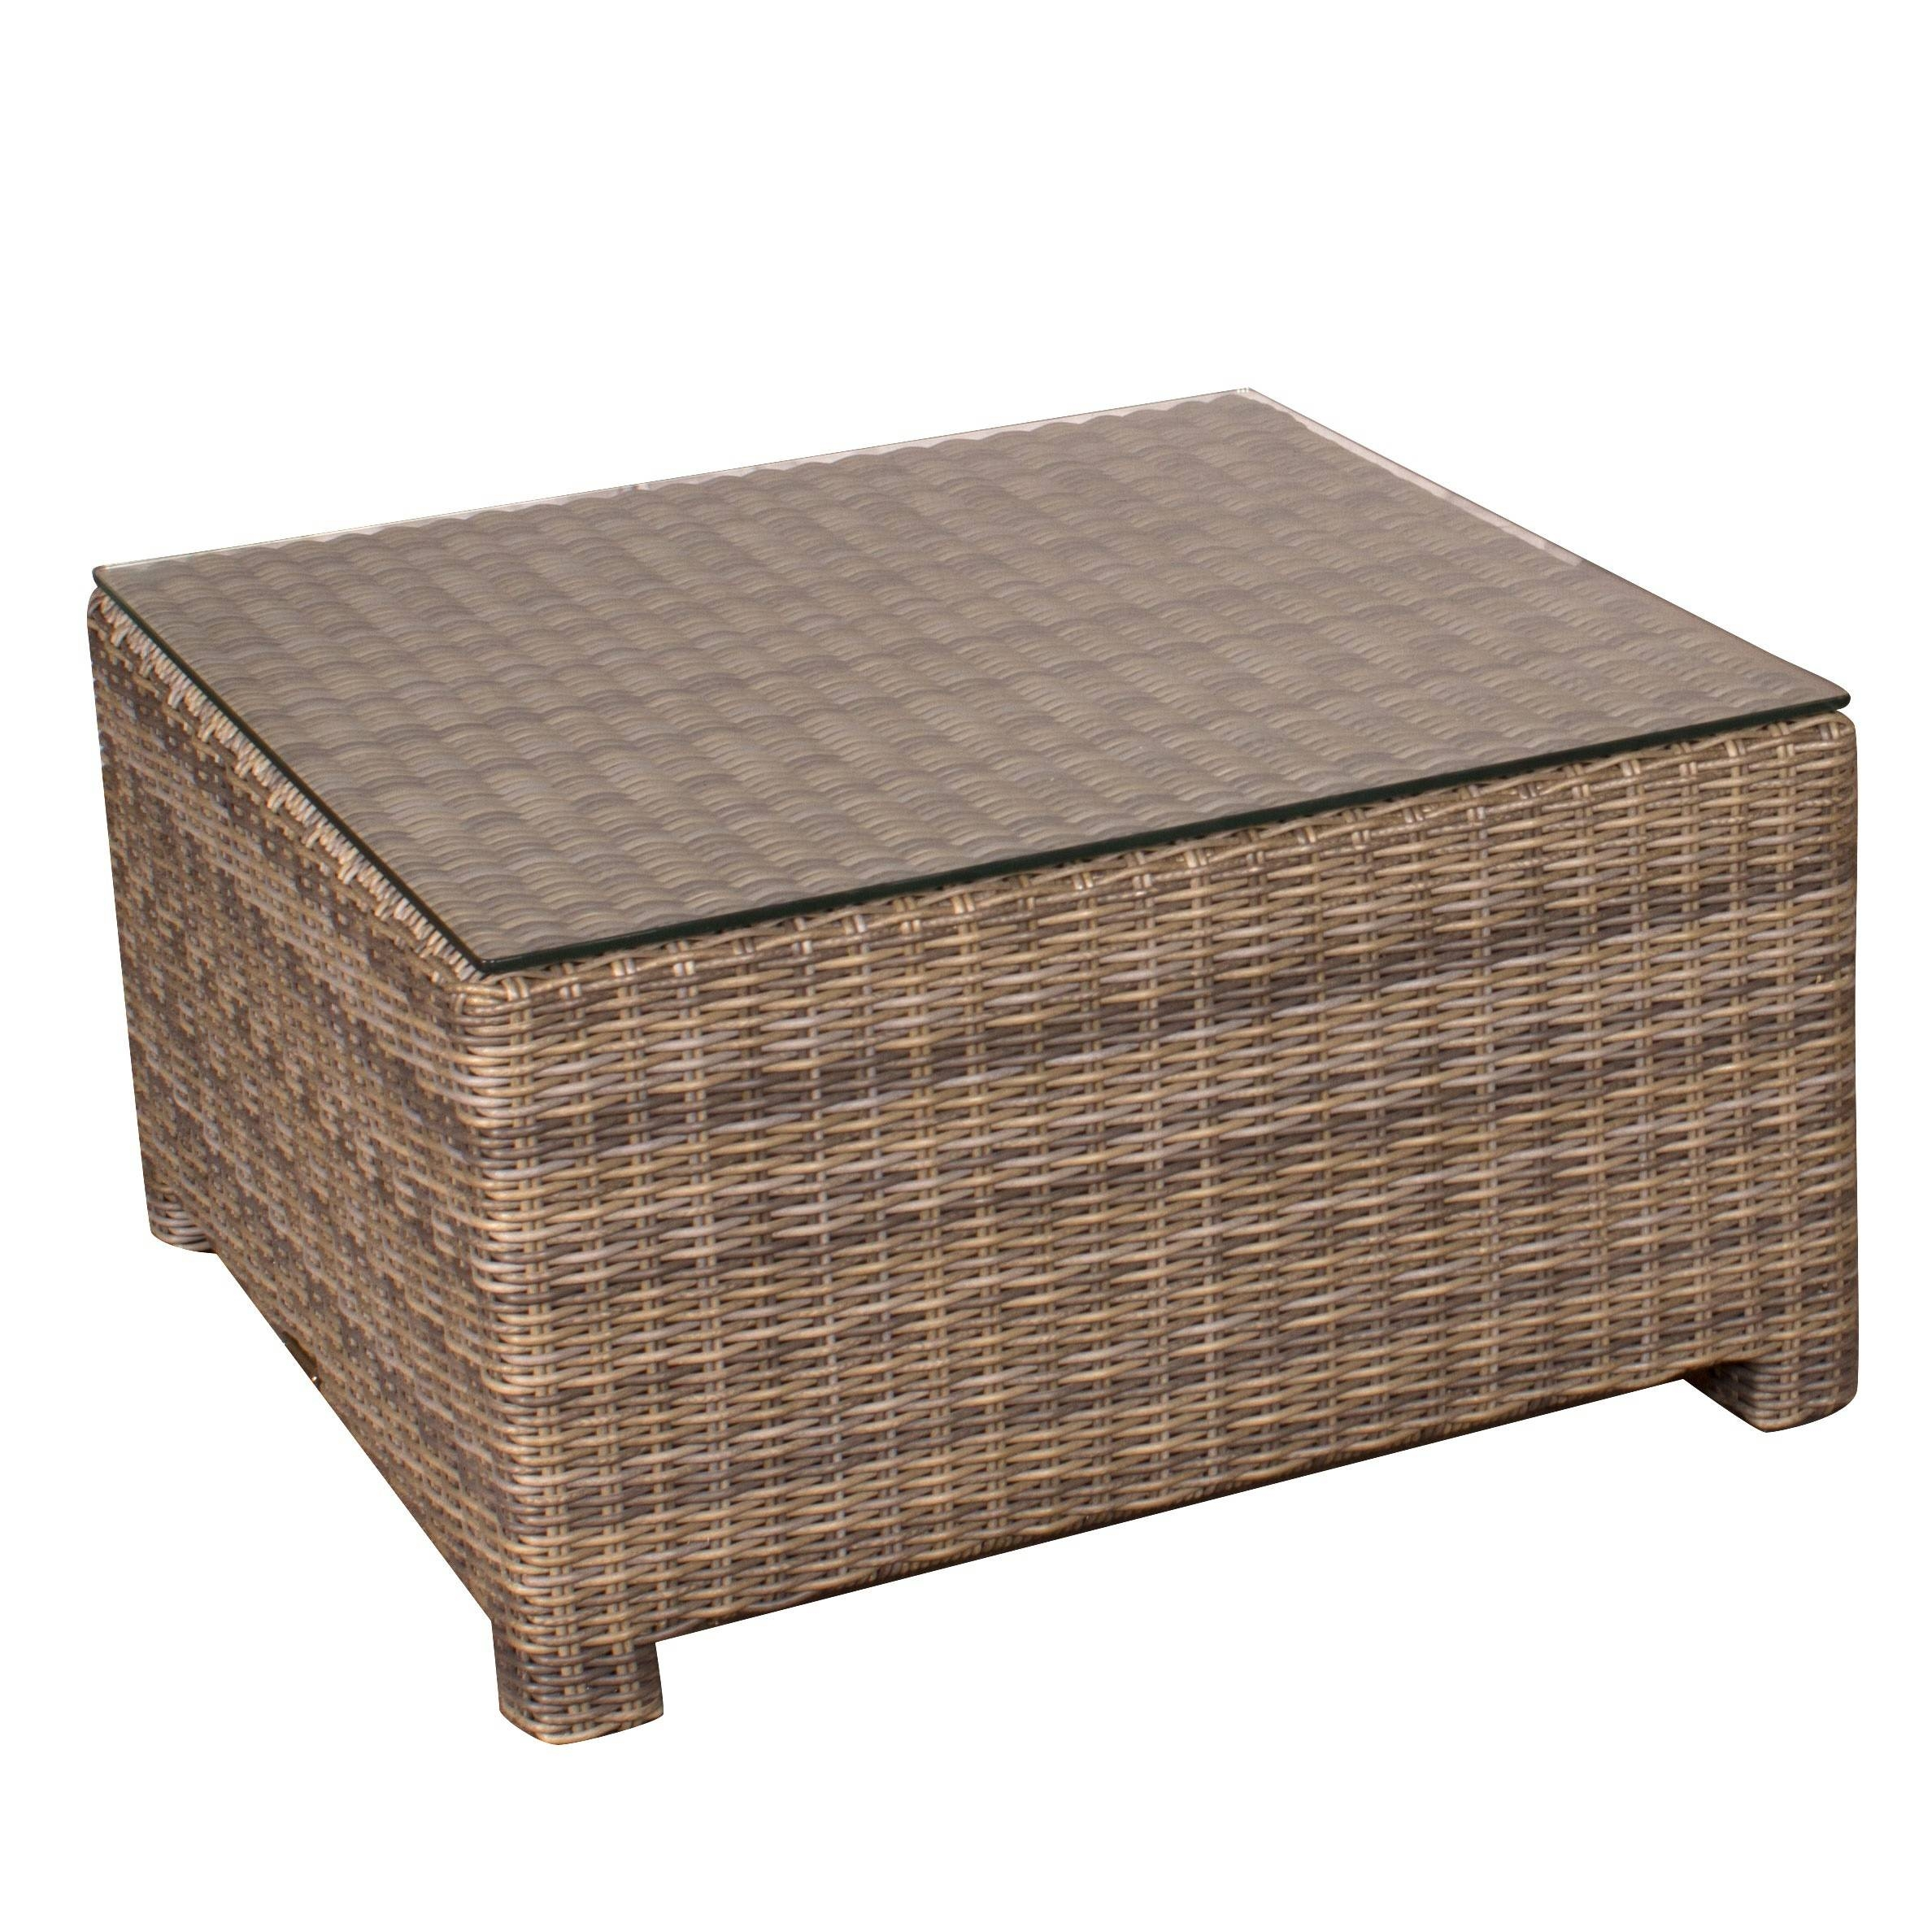 Cypress Wicker Square Coffee Table - Jericho Mafjar Project intended for Square Pine Coffee Tables (Image 11 of 30)